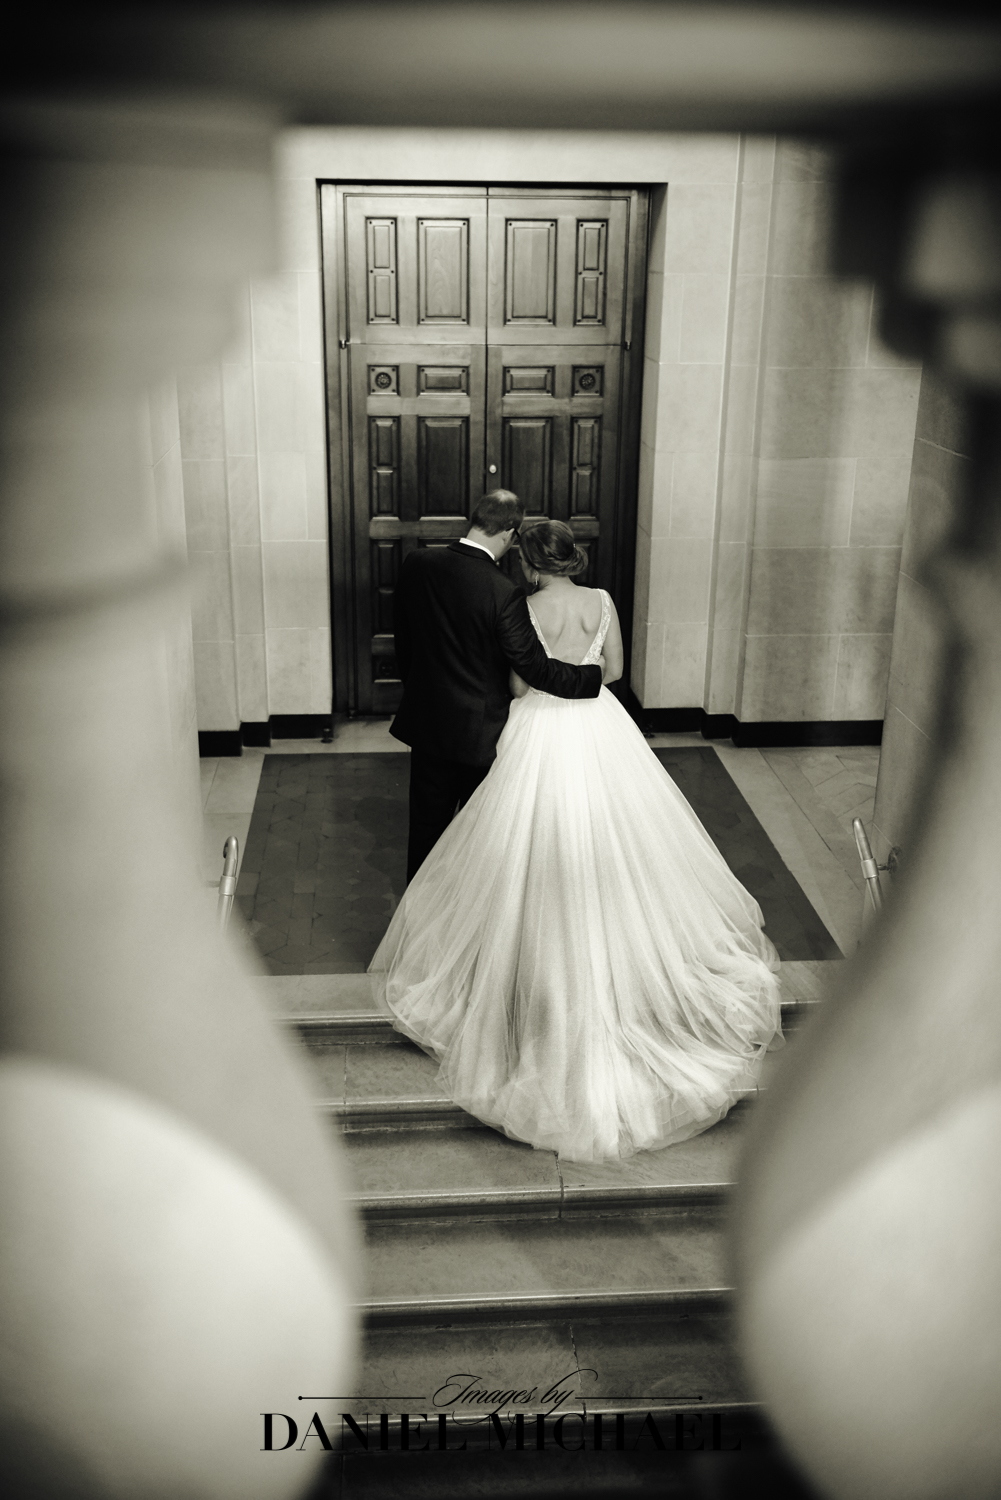 Dayton Art Institute Wedding Photo